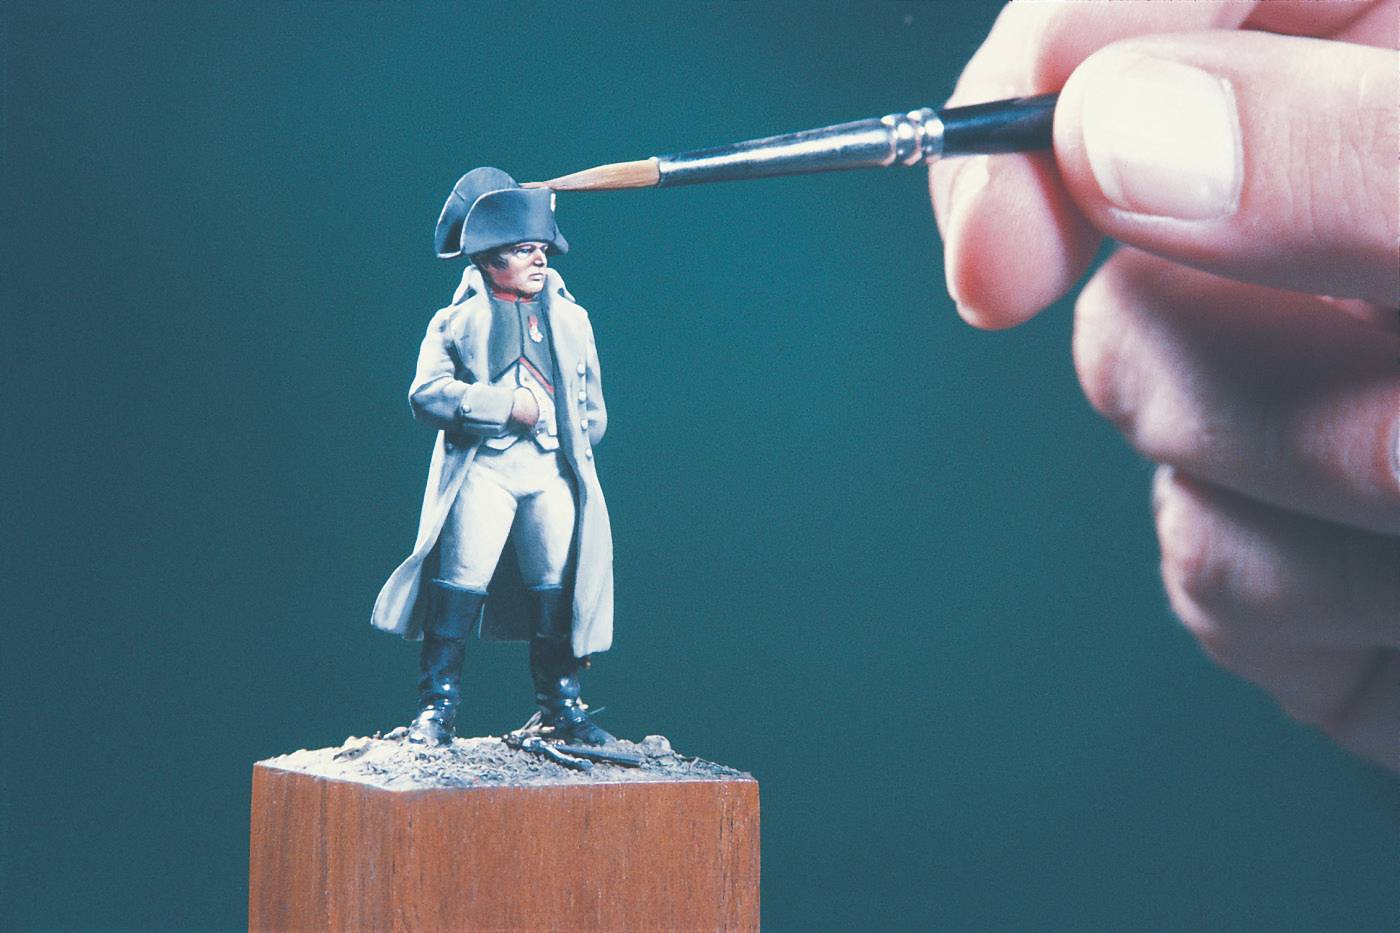 Napoleon figure in miniature showing the fine detail and relative size.